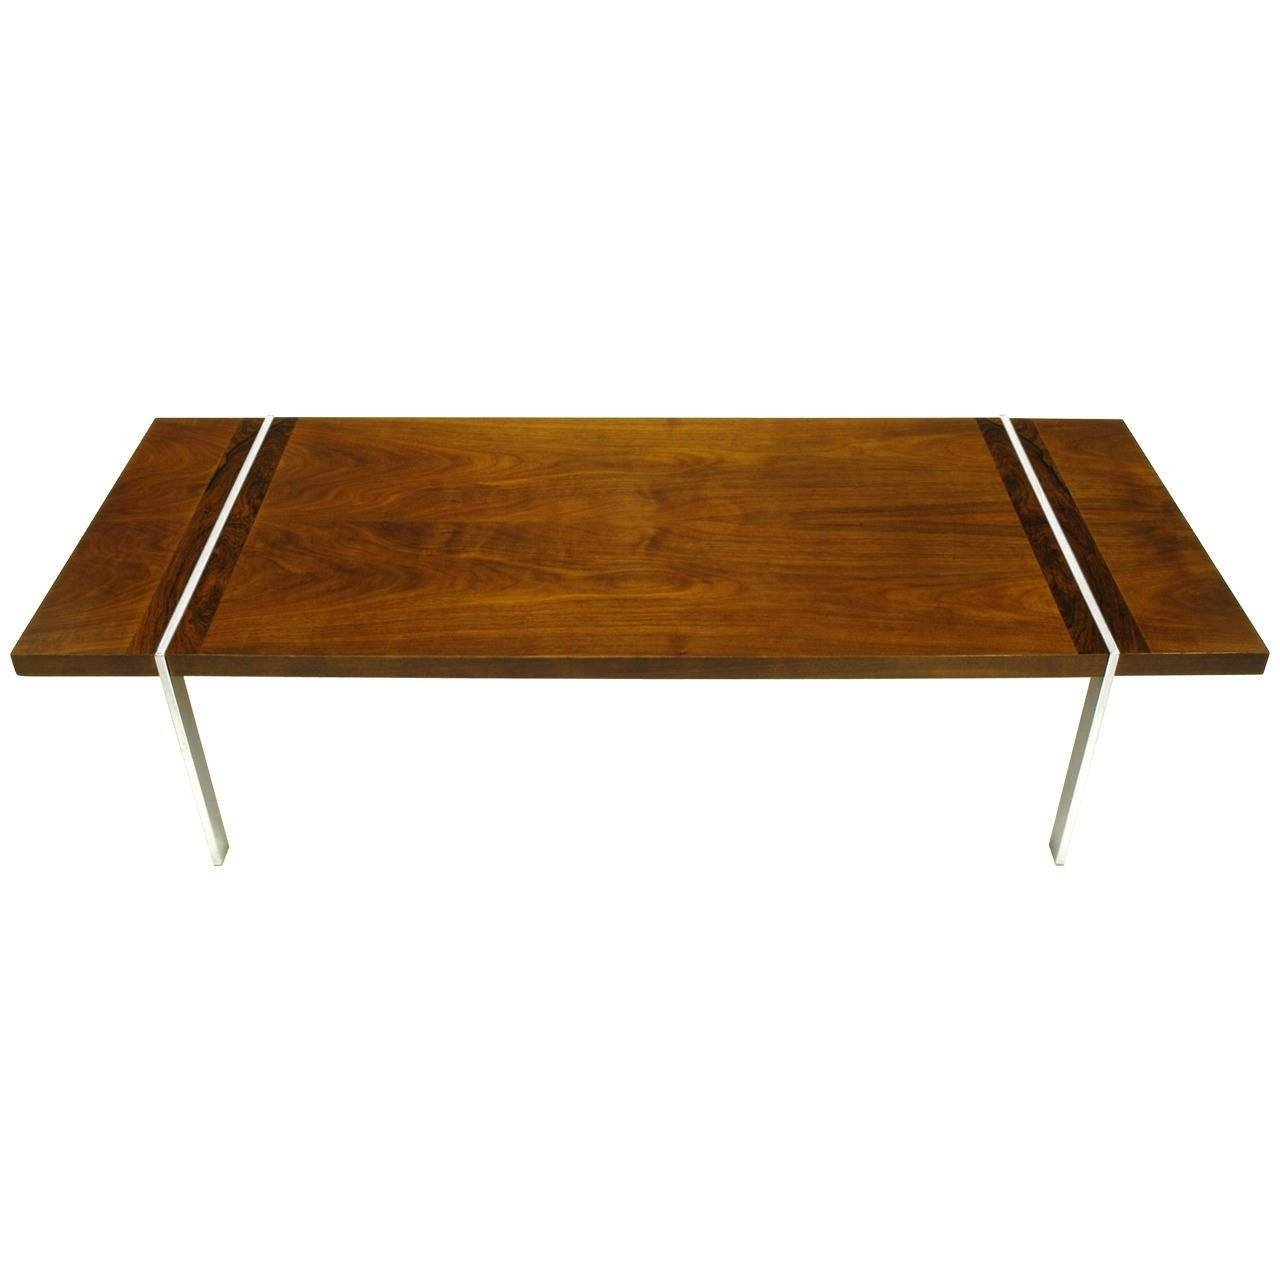 Chrome, Walnut And Rosewood Tripartite Coffee Tablelane For Regarding Chrome And Wood Coffee Tables (View 7 of 30)